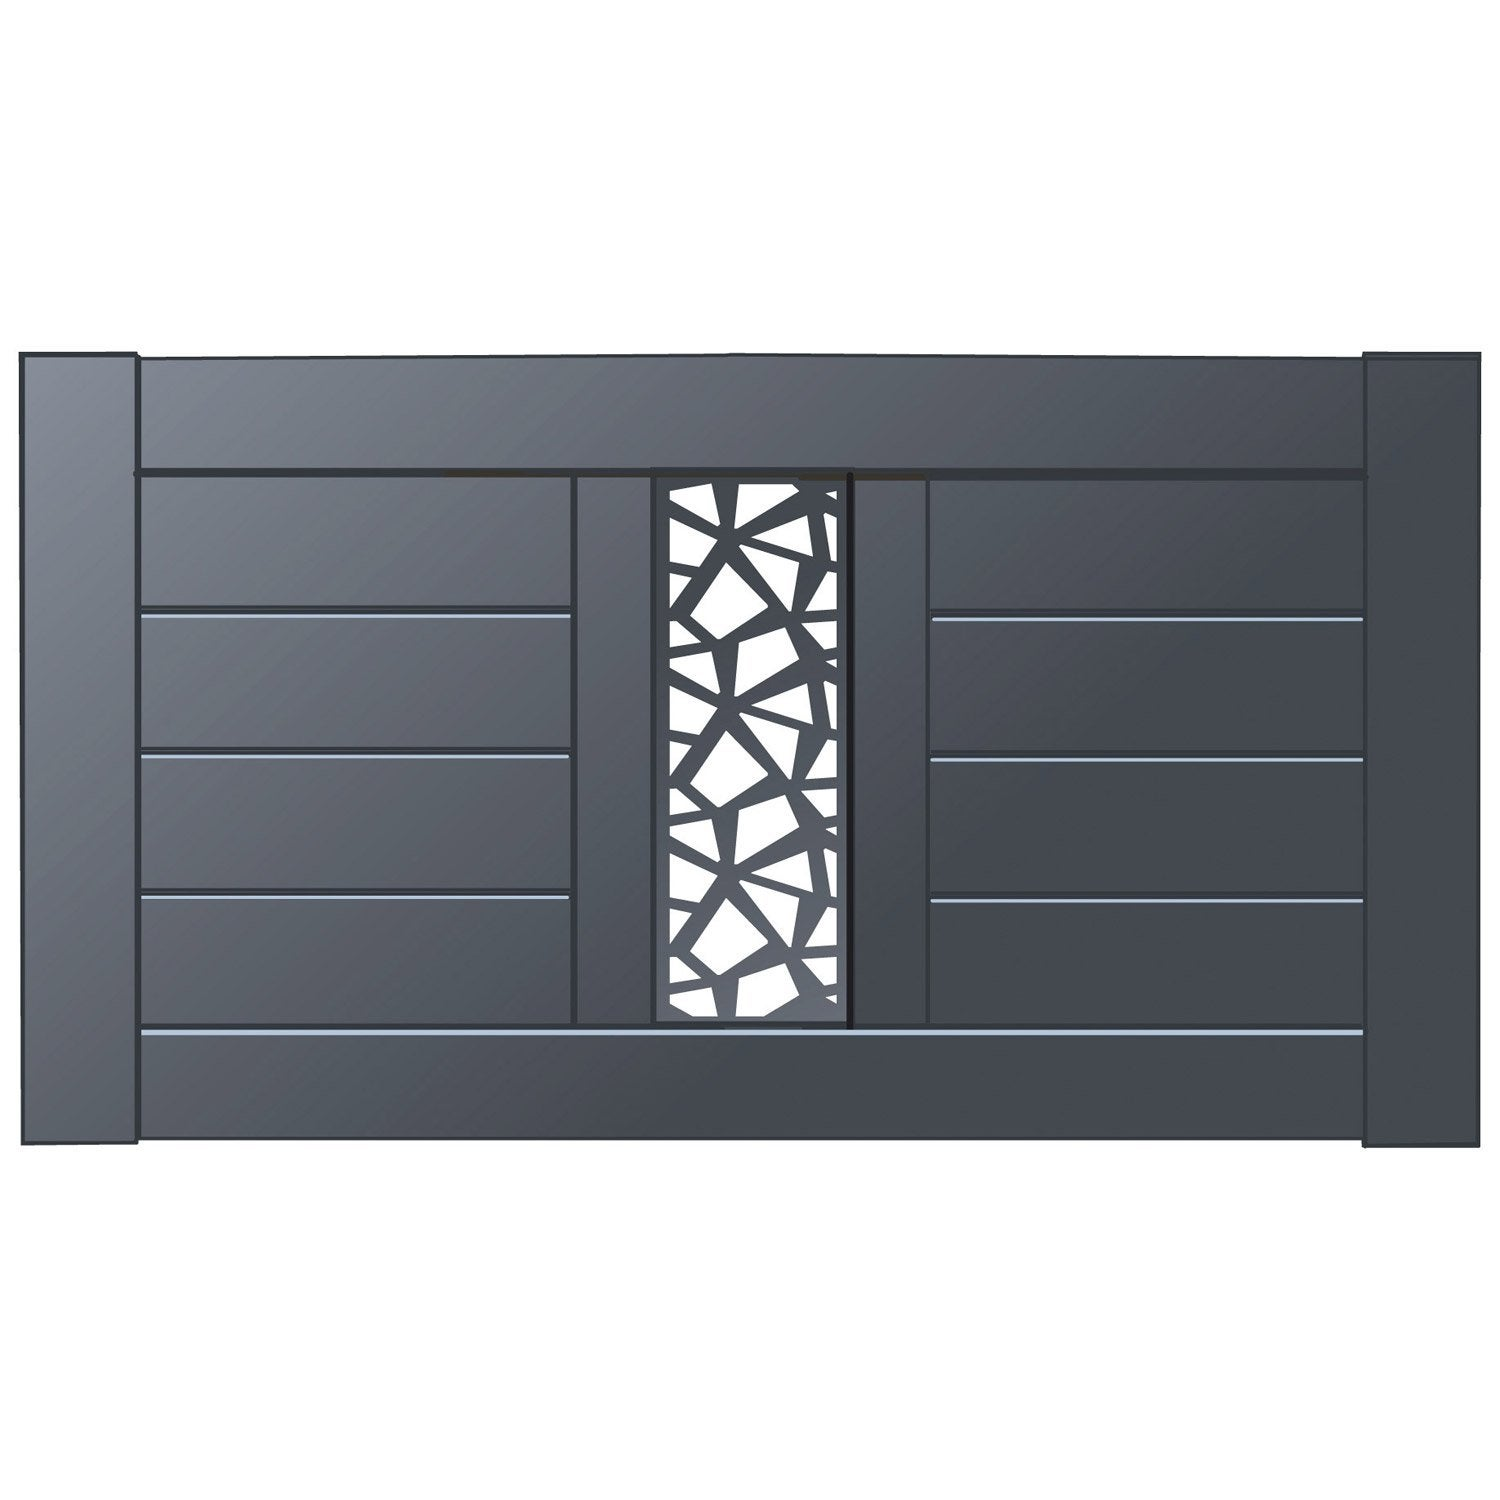 cl ture aluminium mixit naterial divers coloris. Black Bedroom Furniture Sets. Home Design Ideas